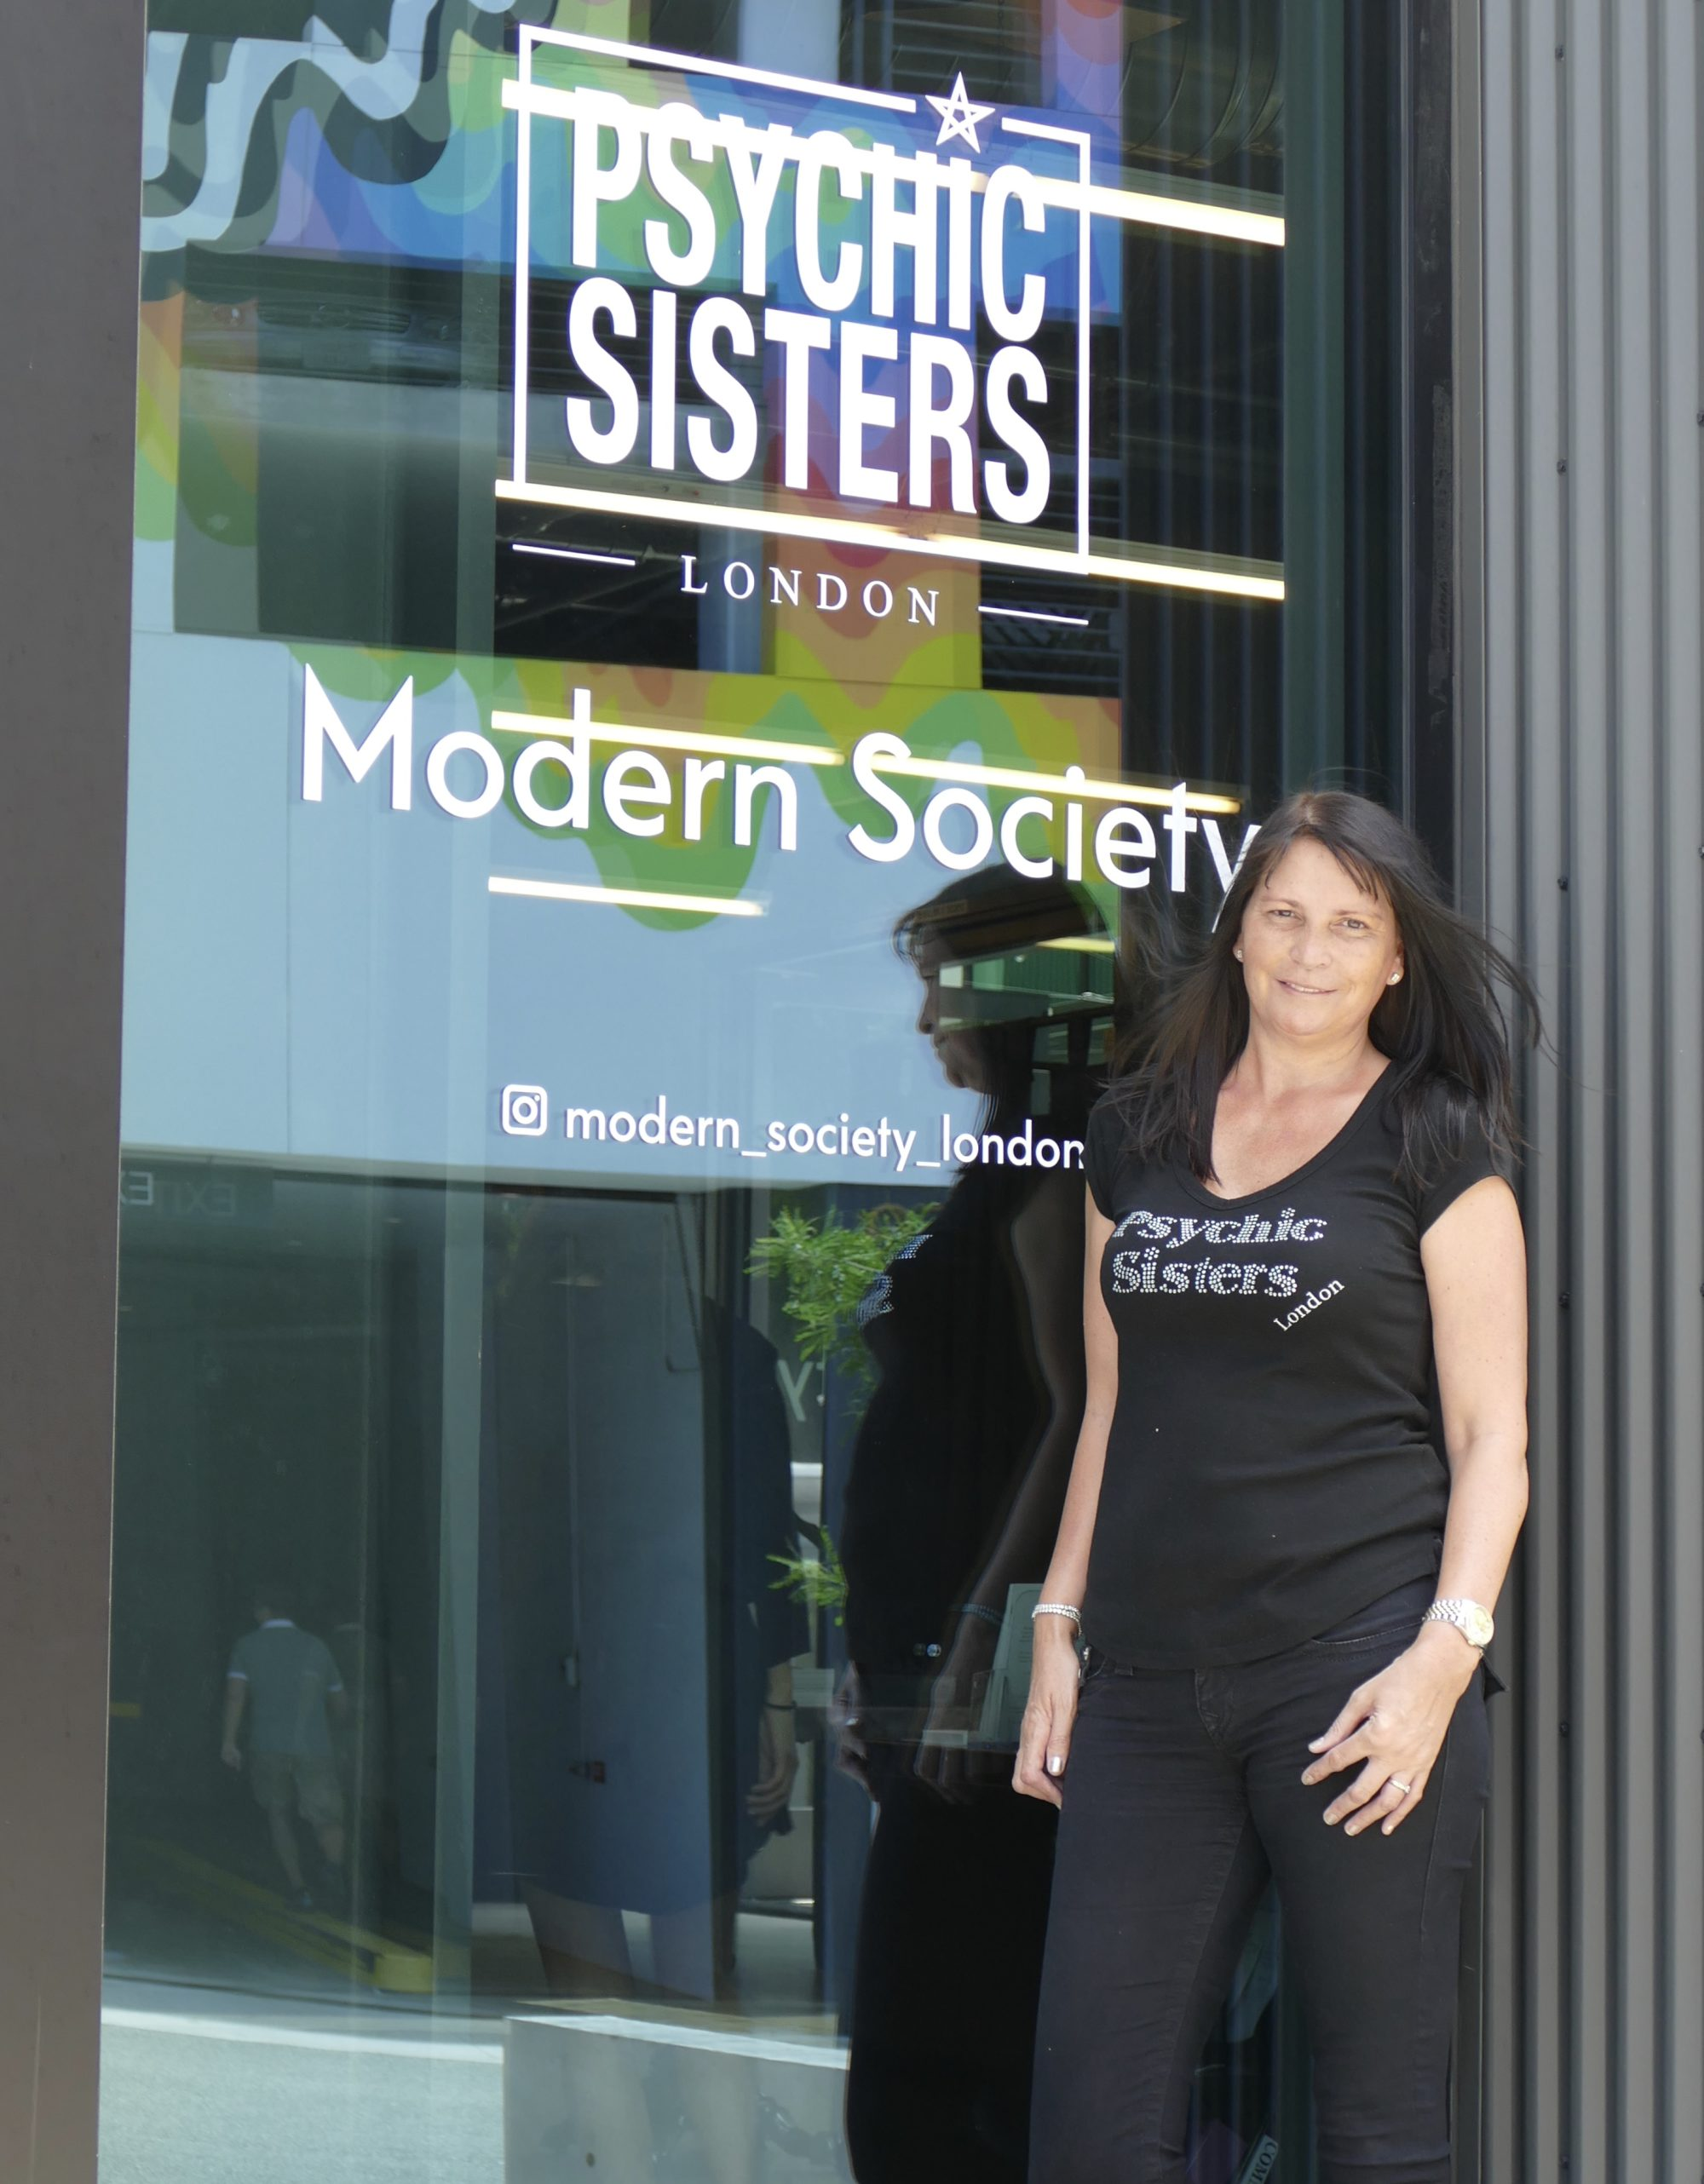 Psychic Sisters new boutique in Los Angeles.